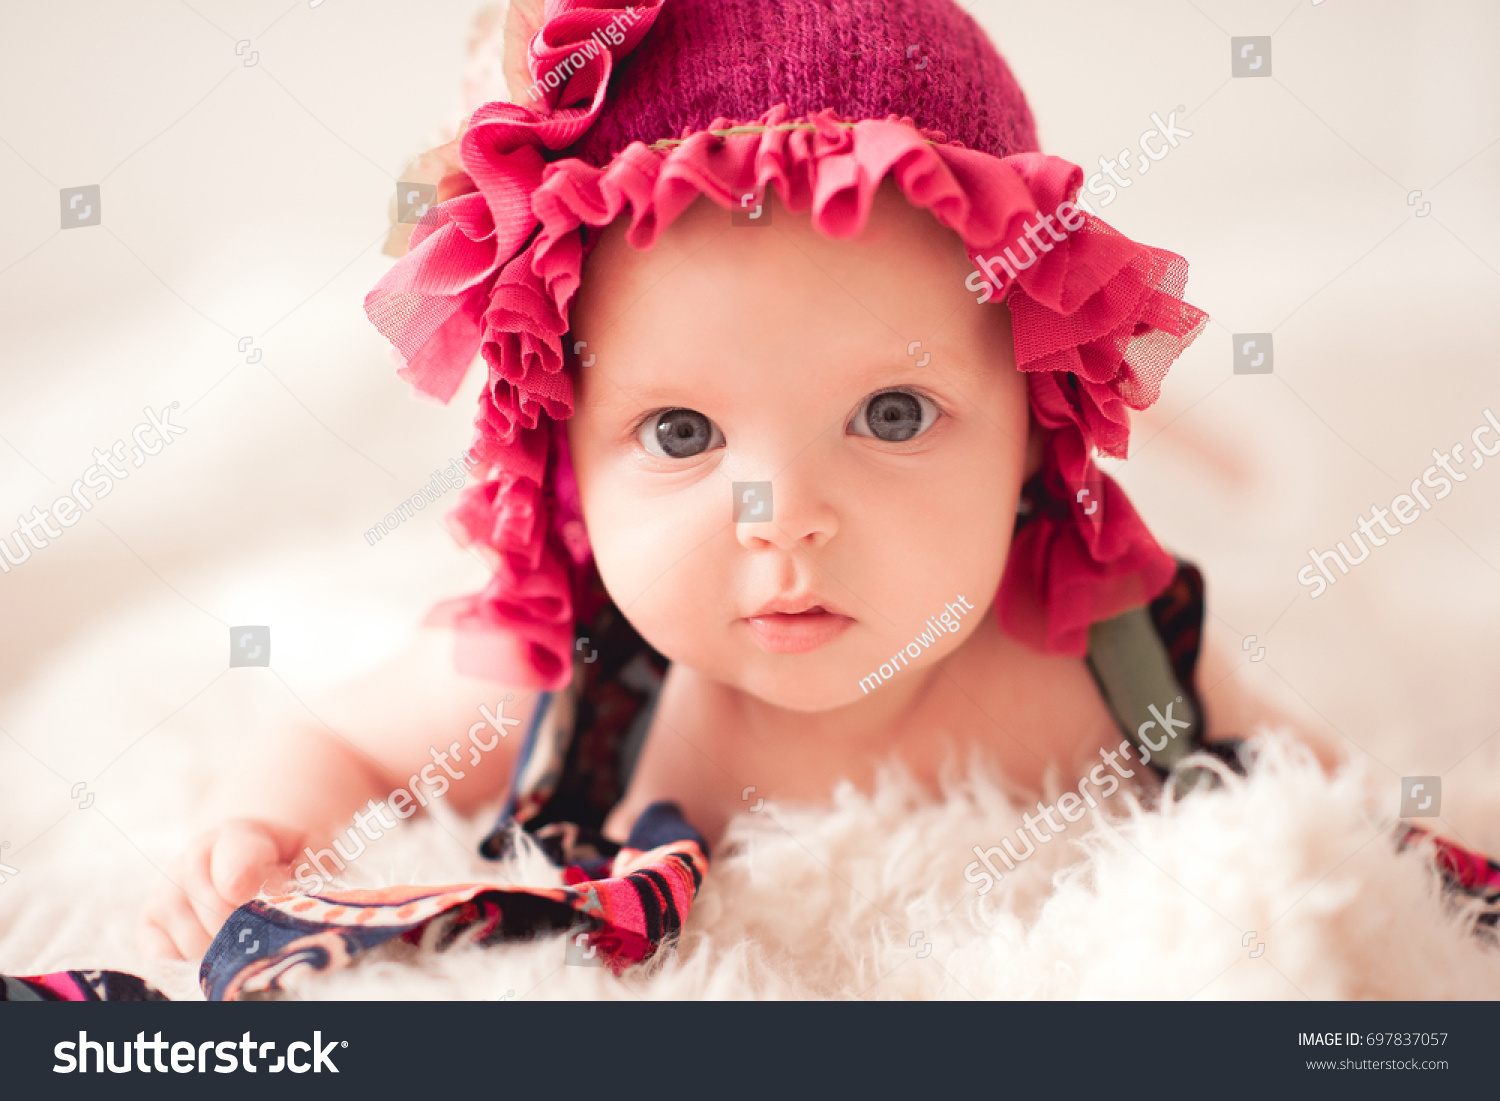 pretty baby girl 23 months old stock photo (safe to use) 697837057